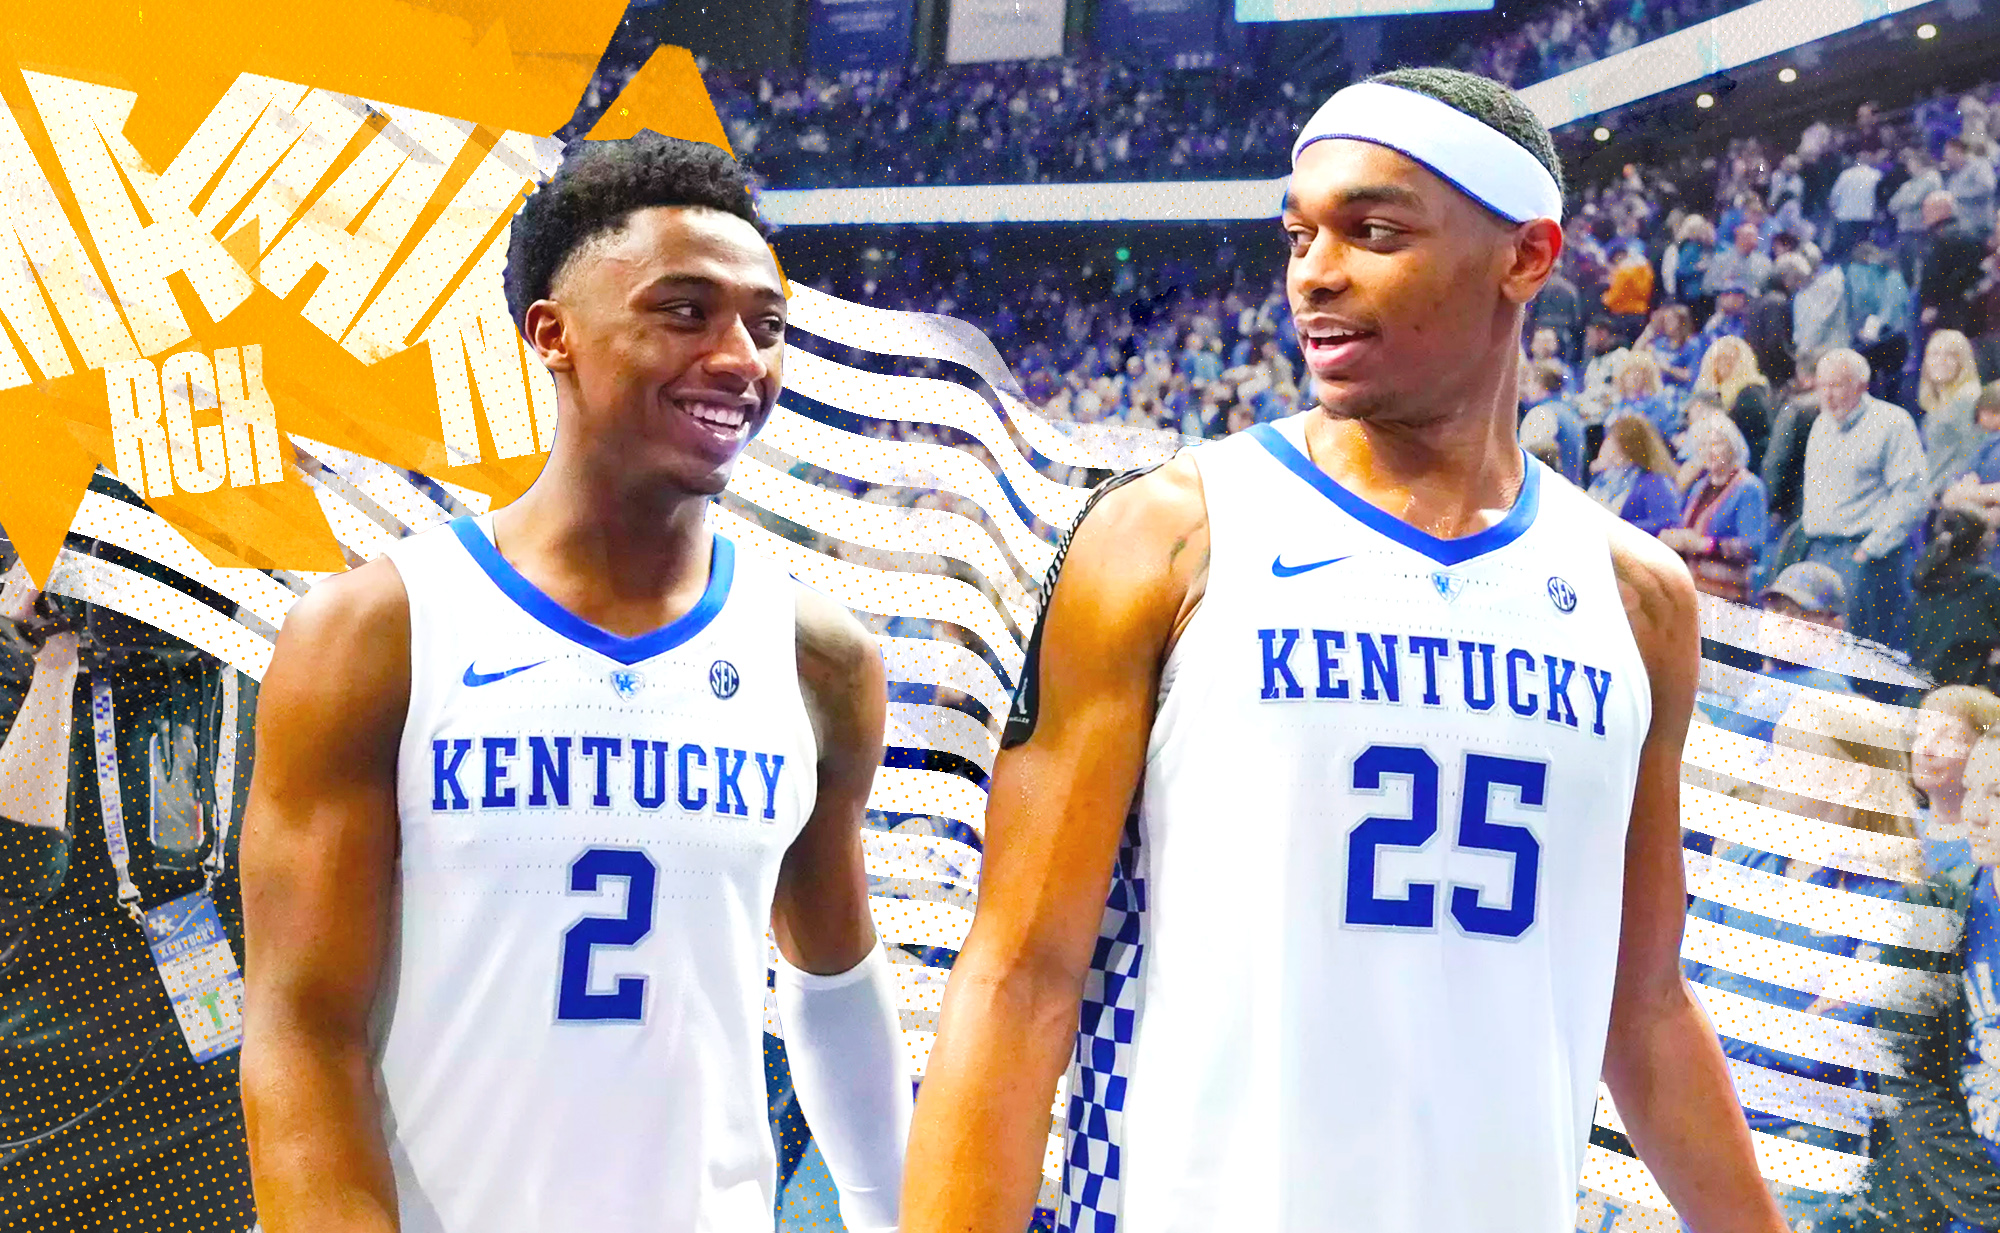 Kentucky is poised for a national championship run for 3 reasons